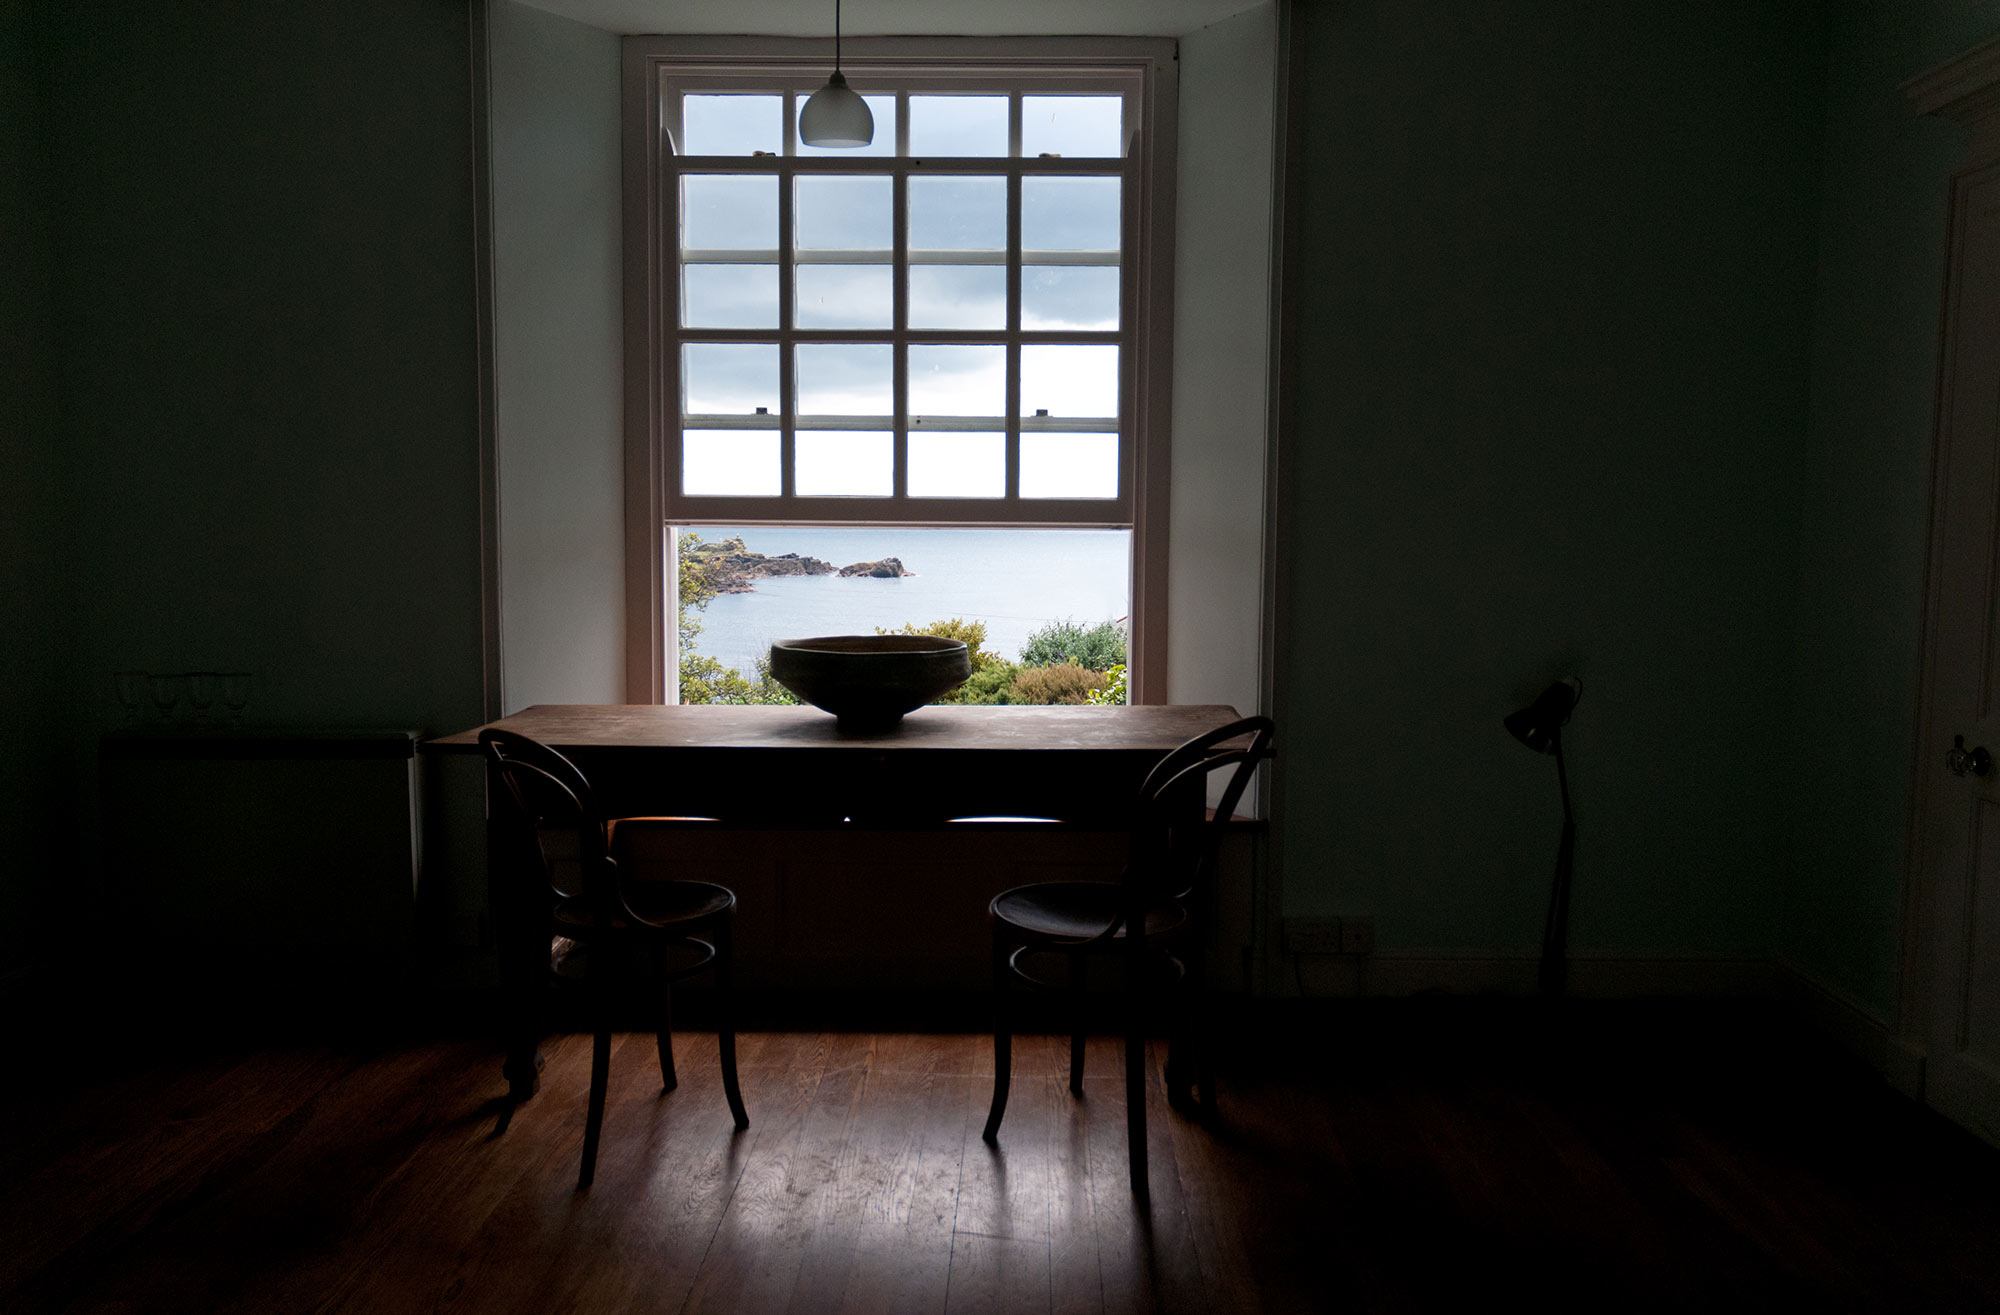 doherty-porcelain-living-space-big-bowl-by-the-window.jpg